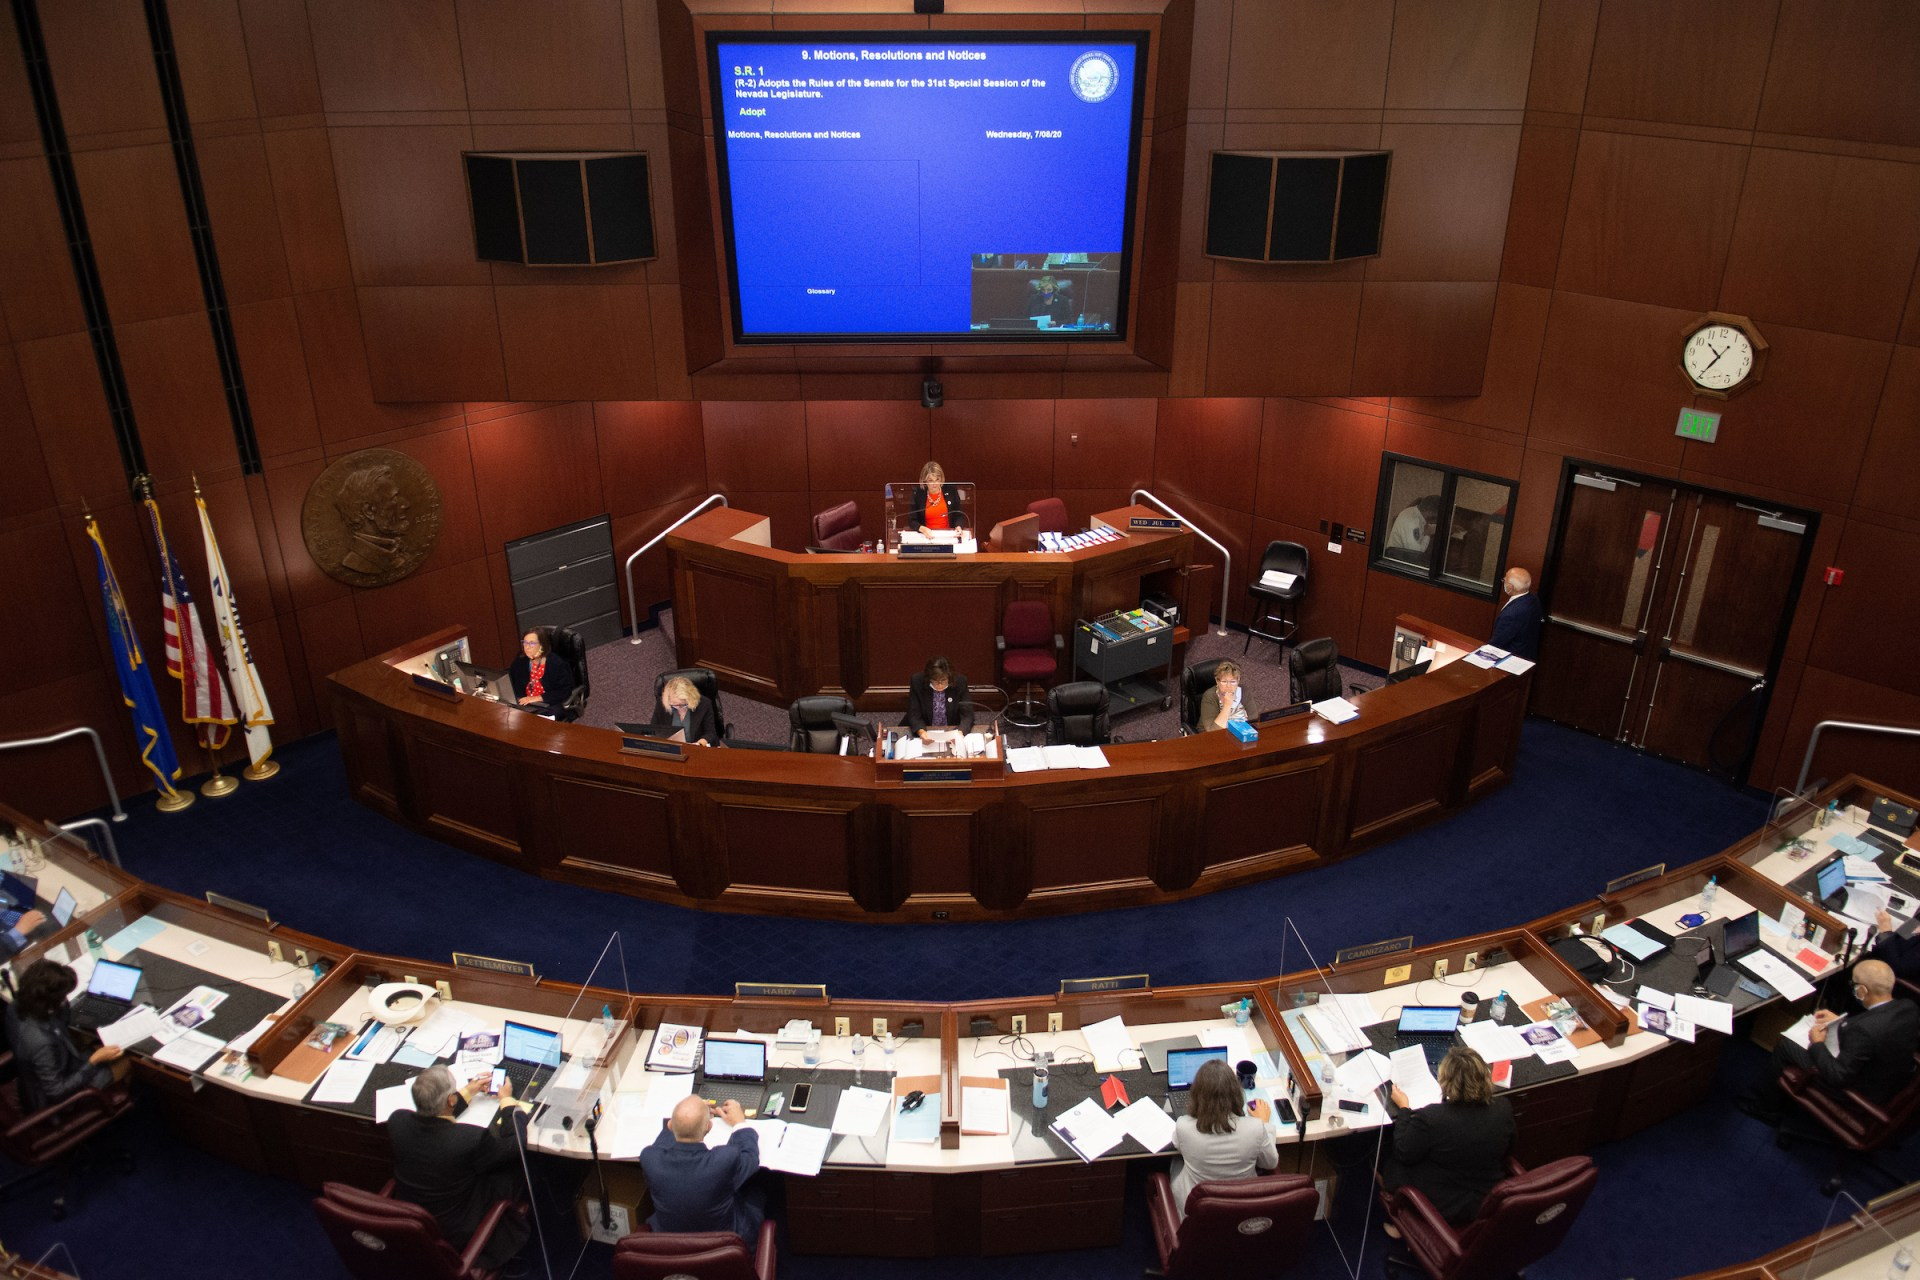 The Nevada State Senate chambers on the first day of the 31st Special Session of the Nevada Legislature in Carson City, Nev., on Wednesday, July 8, 2020. (David Calvert/The Nevada Independent)